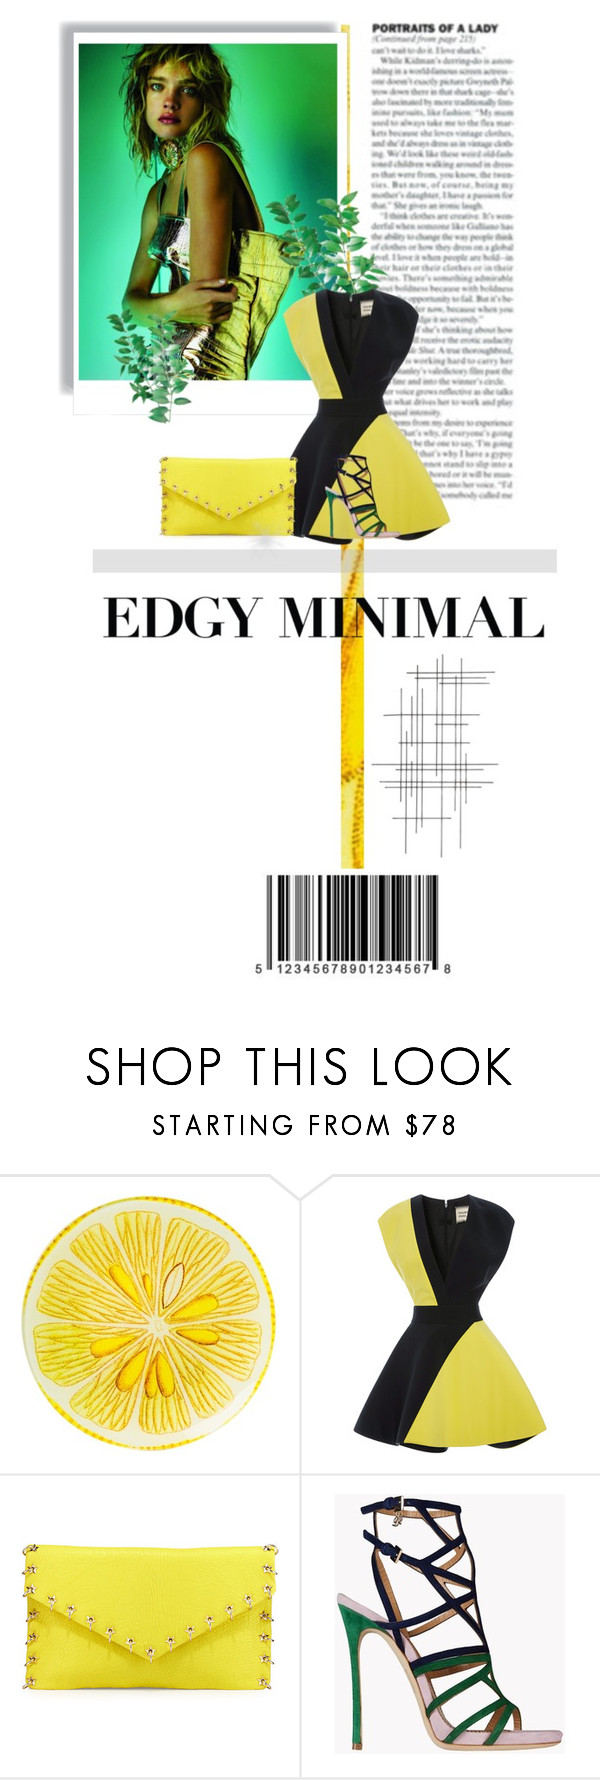 """Mostly Minimalistic"" by fl4u ❤ liked on Polyvore featuring John Derian, FAUSTO PUGLISI, Ash, Dsquared2, Crate and Barrel, yellow, partystyle, Puglisi, blokprint and mostlyminimal"